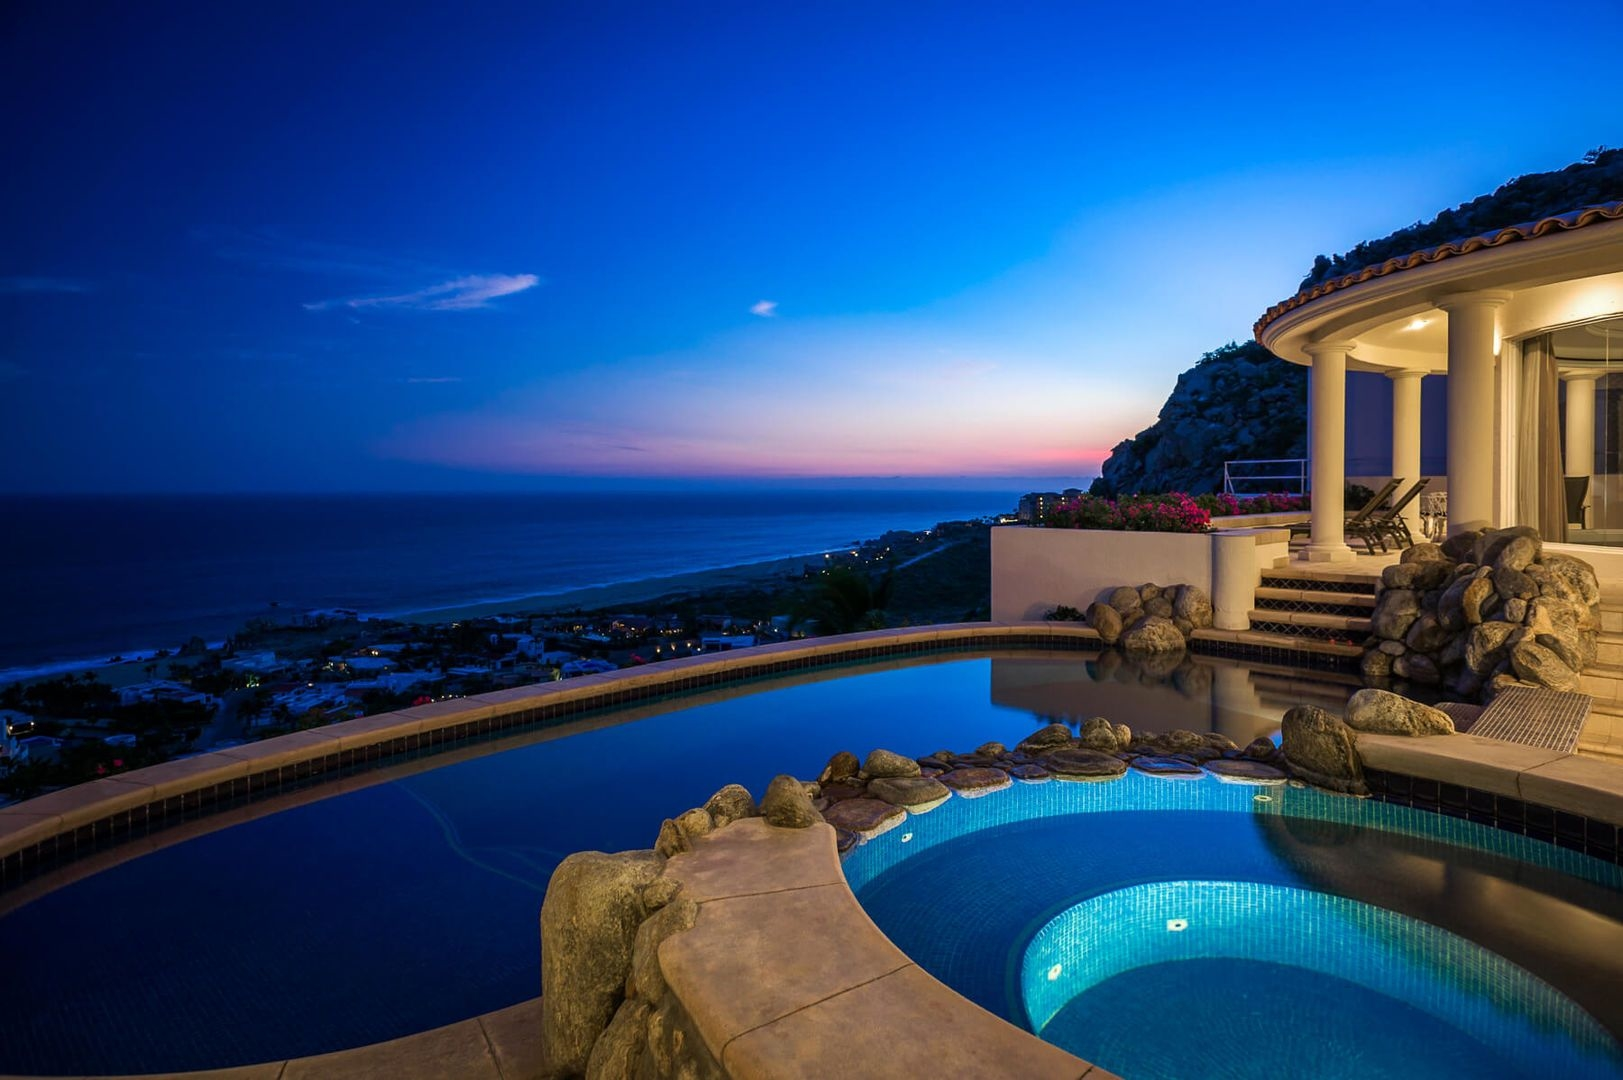 Luxury vacation rentals mexico - Los cabos - Cabo - Pedregal - Villa Thunderbird - Image 1/25